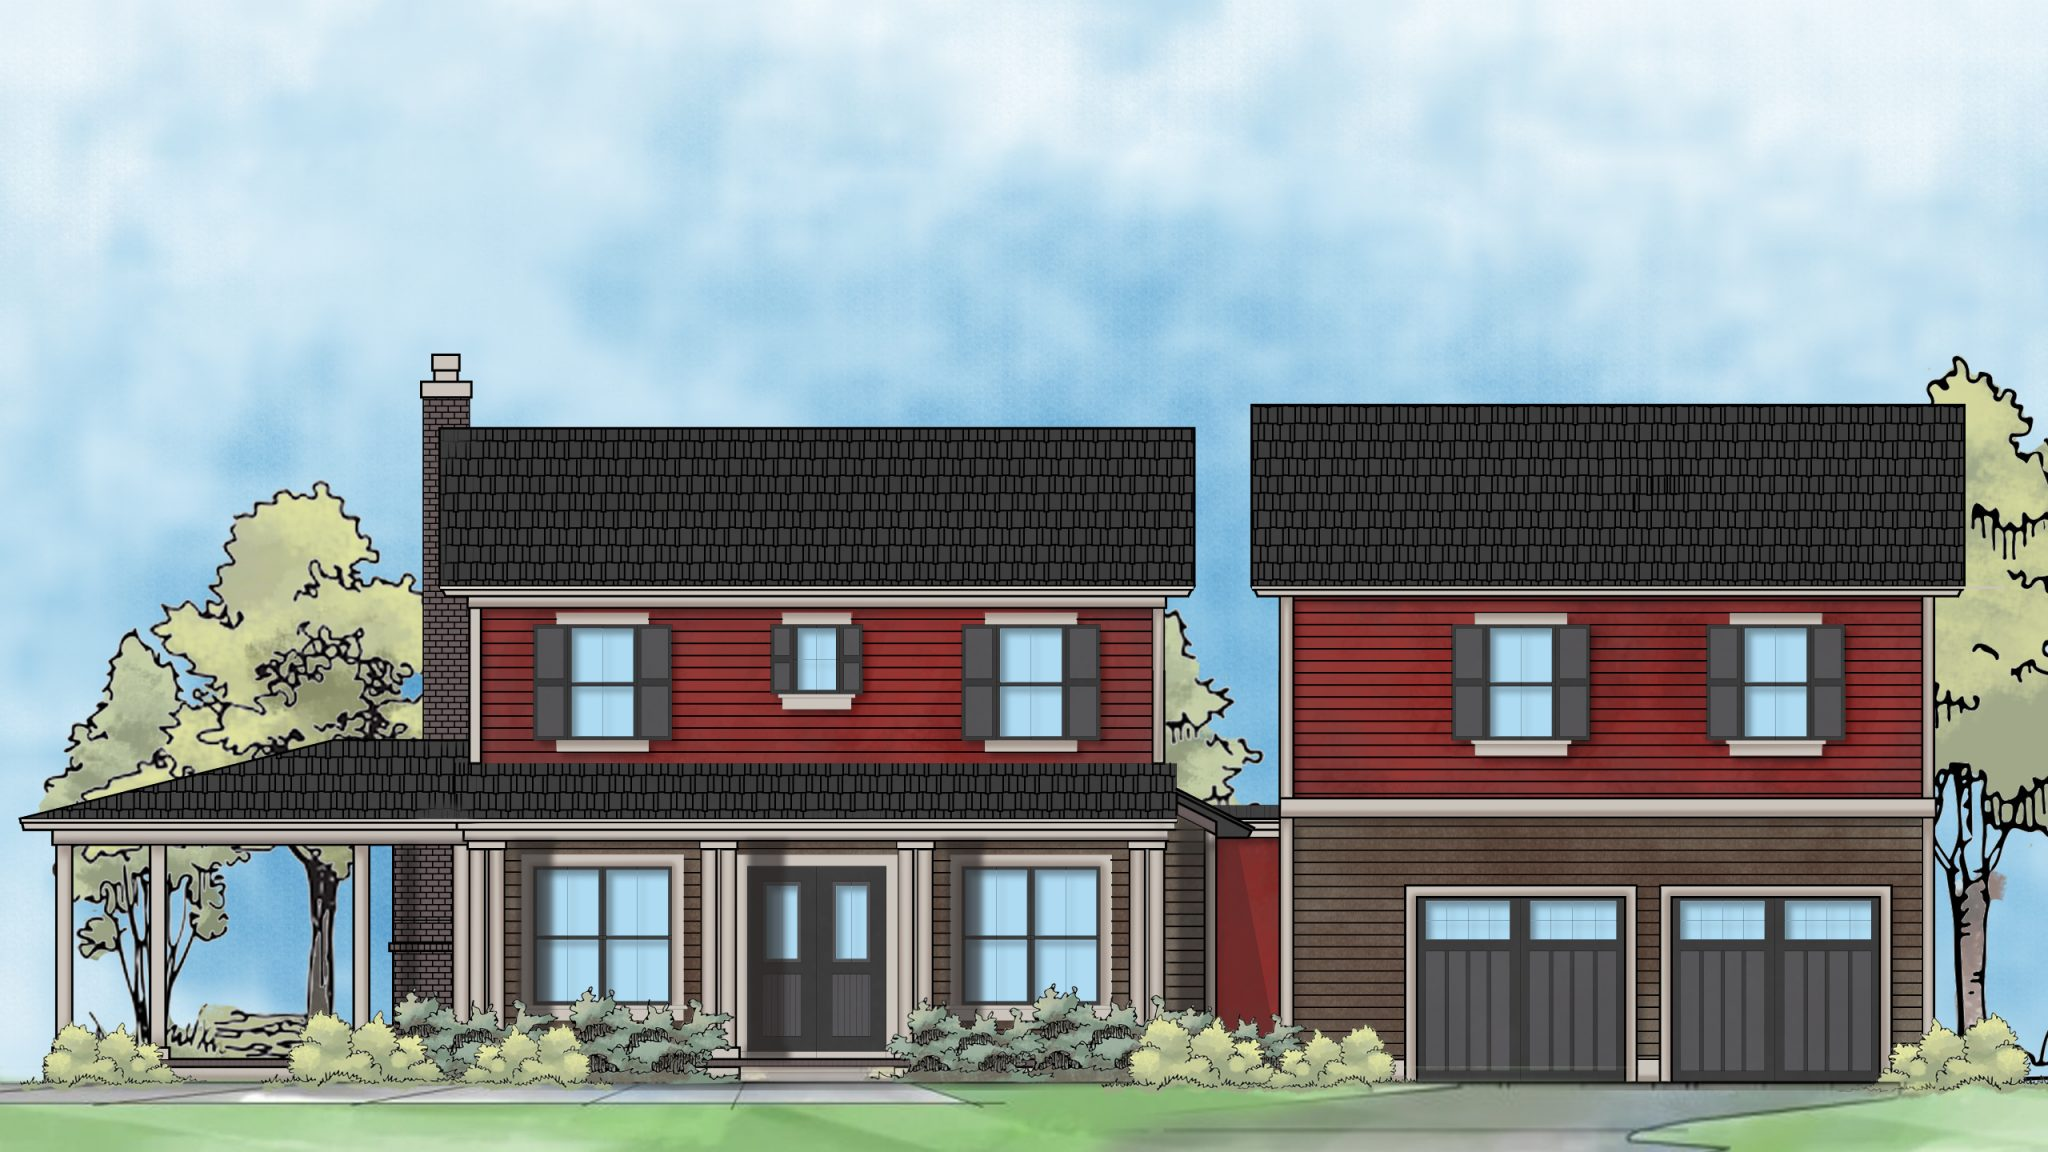 color rendering of two story residential home design - elevation